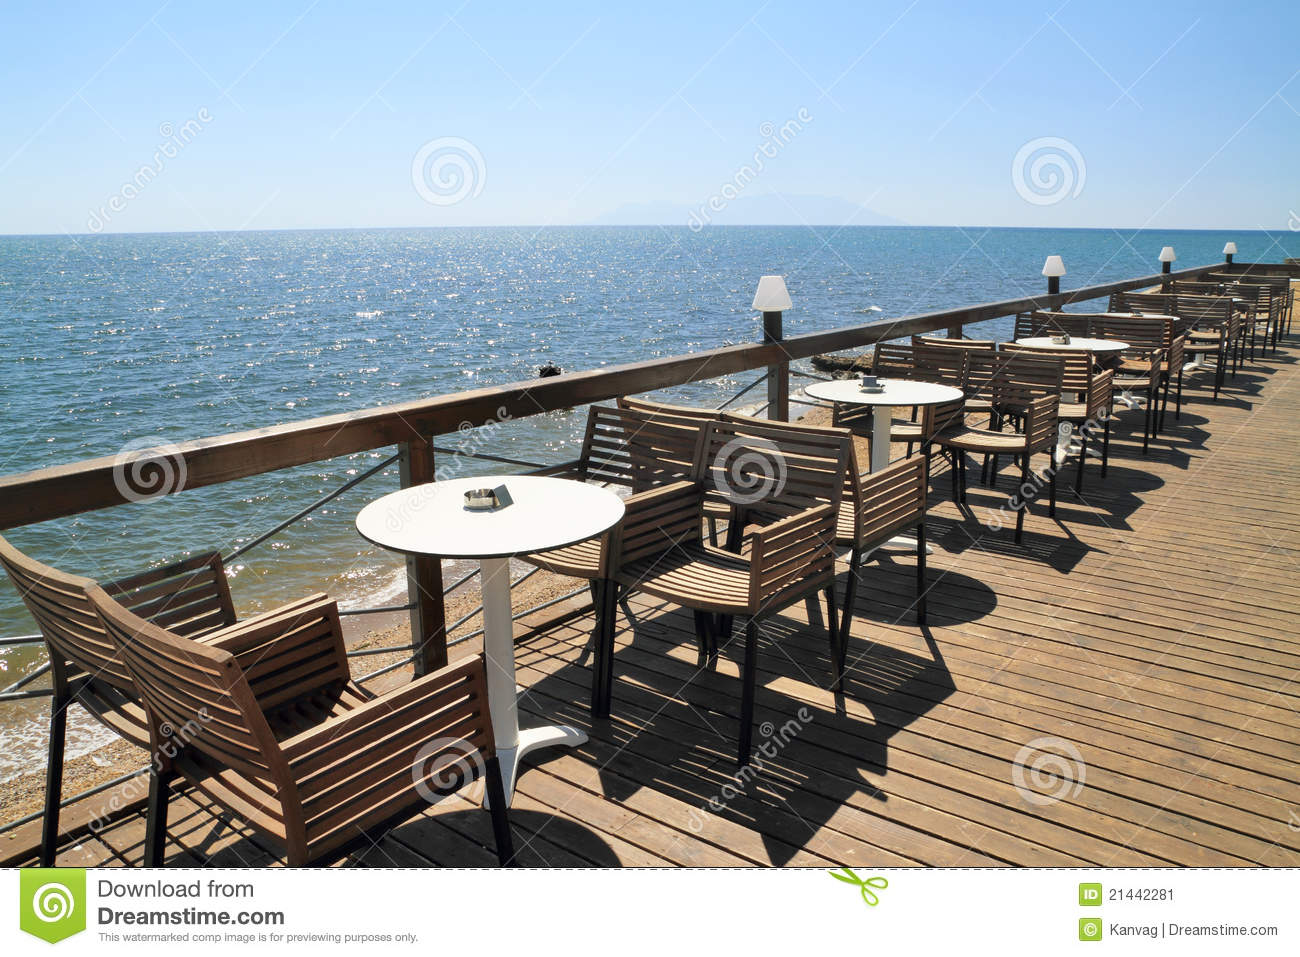 Idyllic Cafe By The Sea Stock Image - Image: 21442281